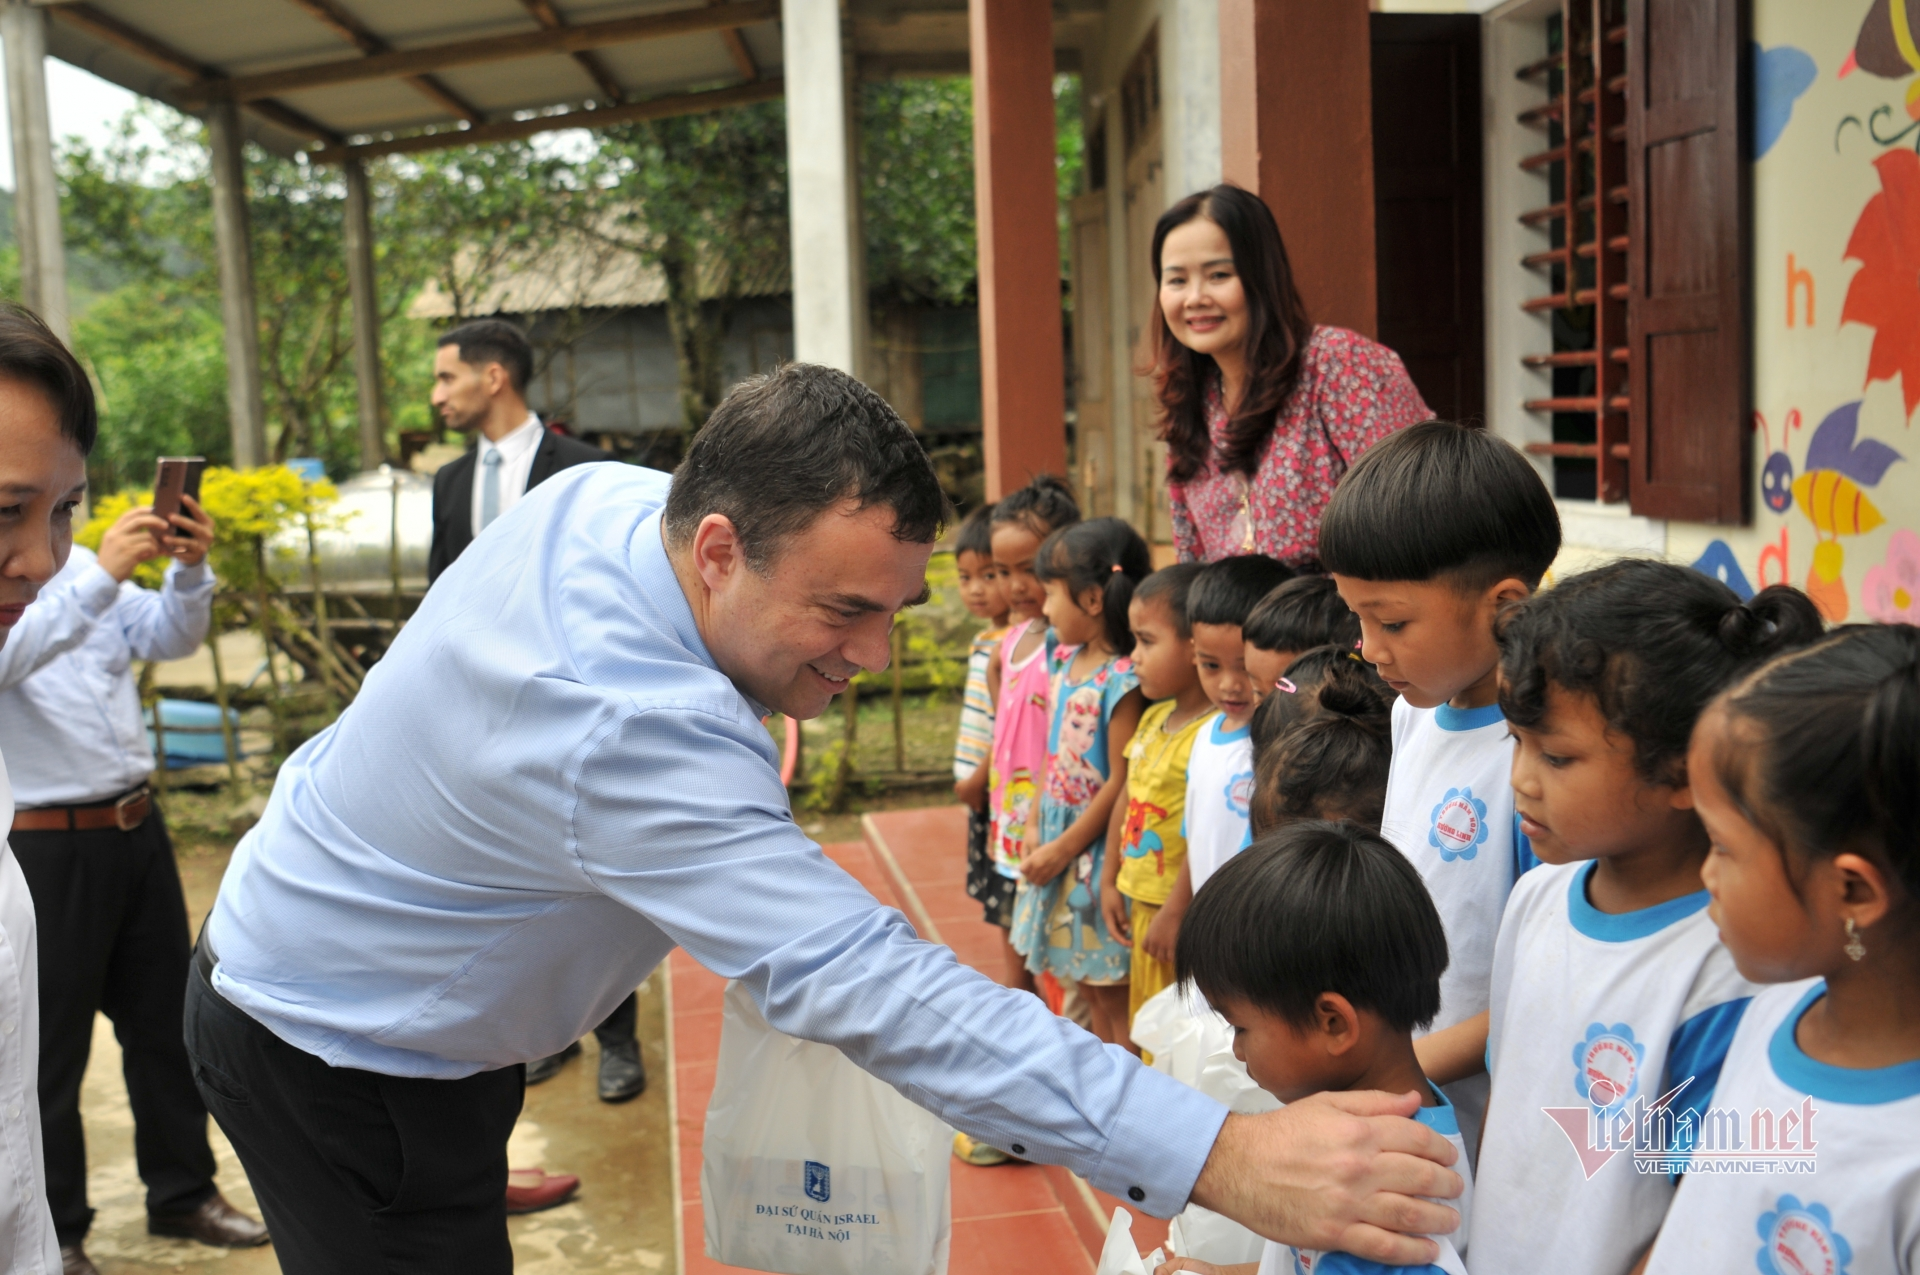 'We want to bring prosperity for Quang Tri residents', Israeli Ambassador says